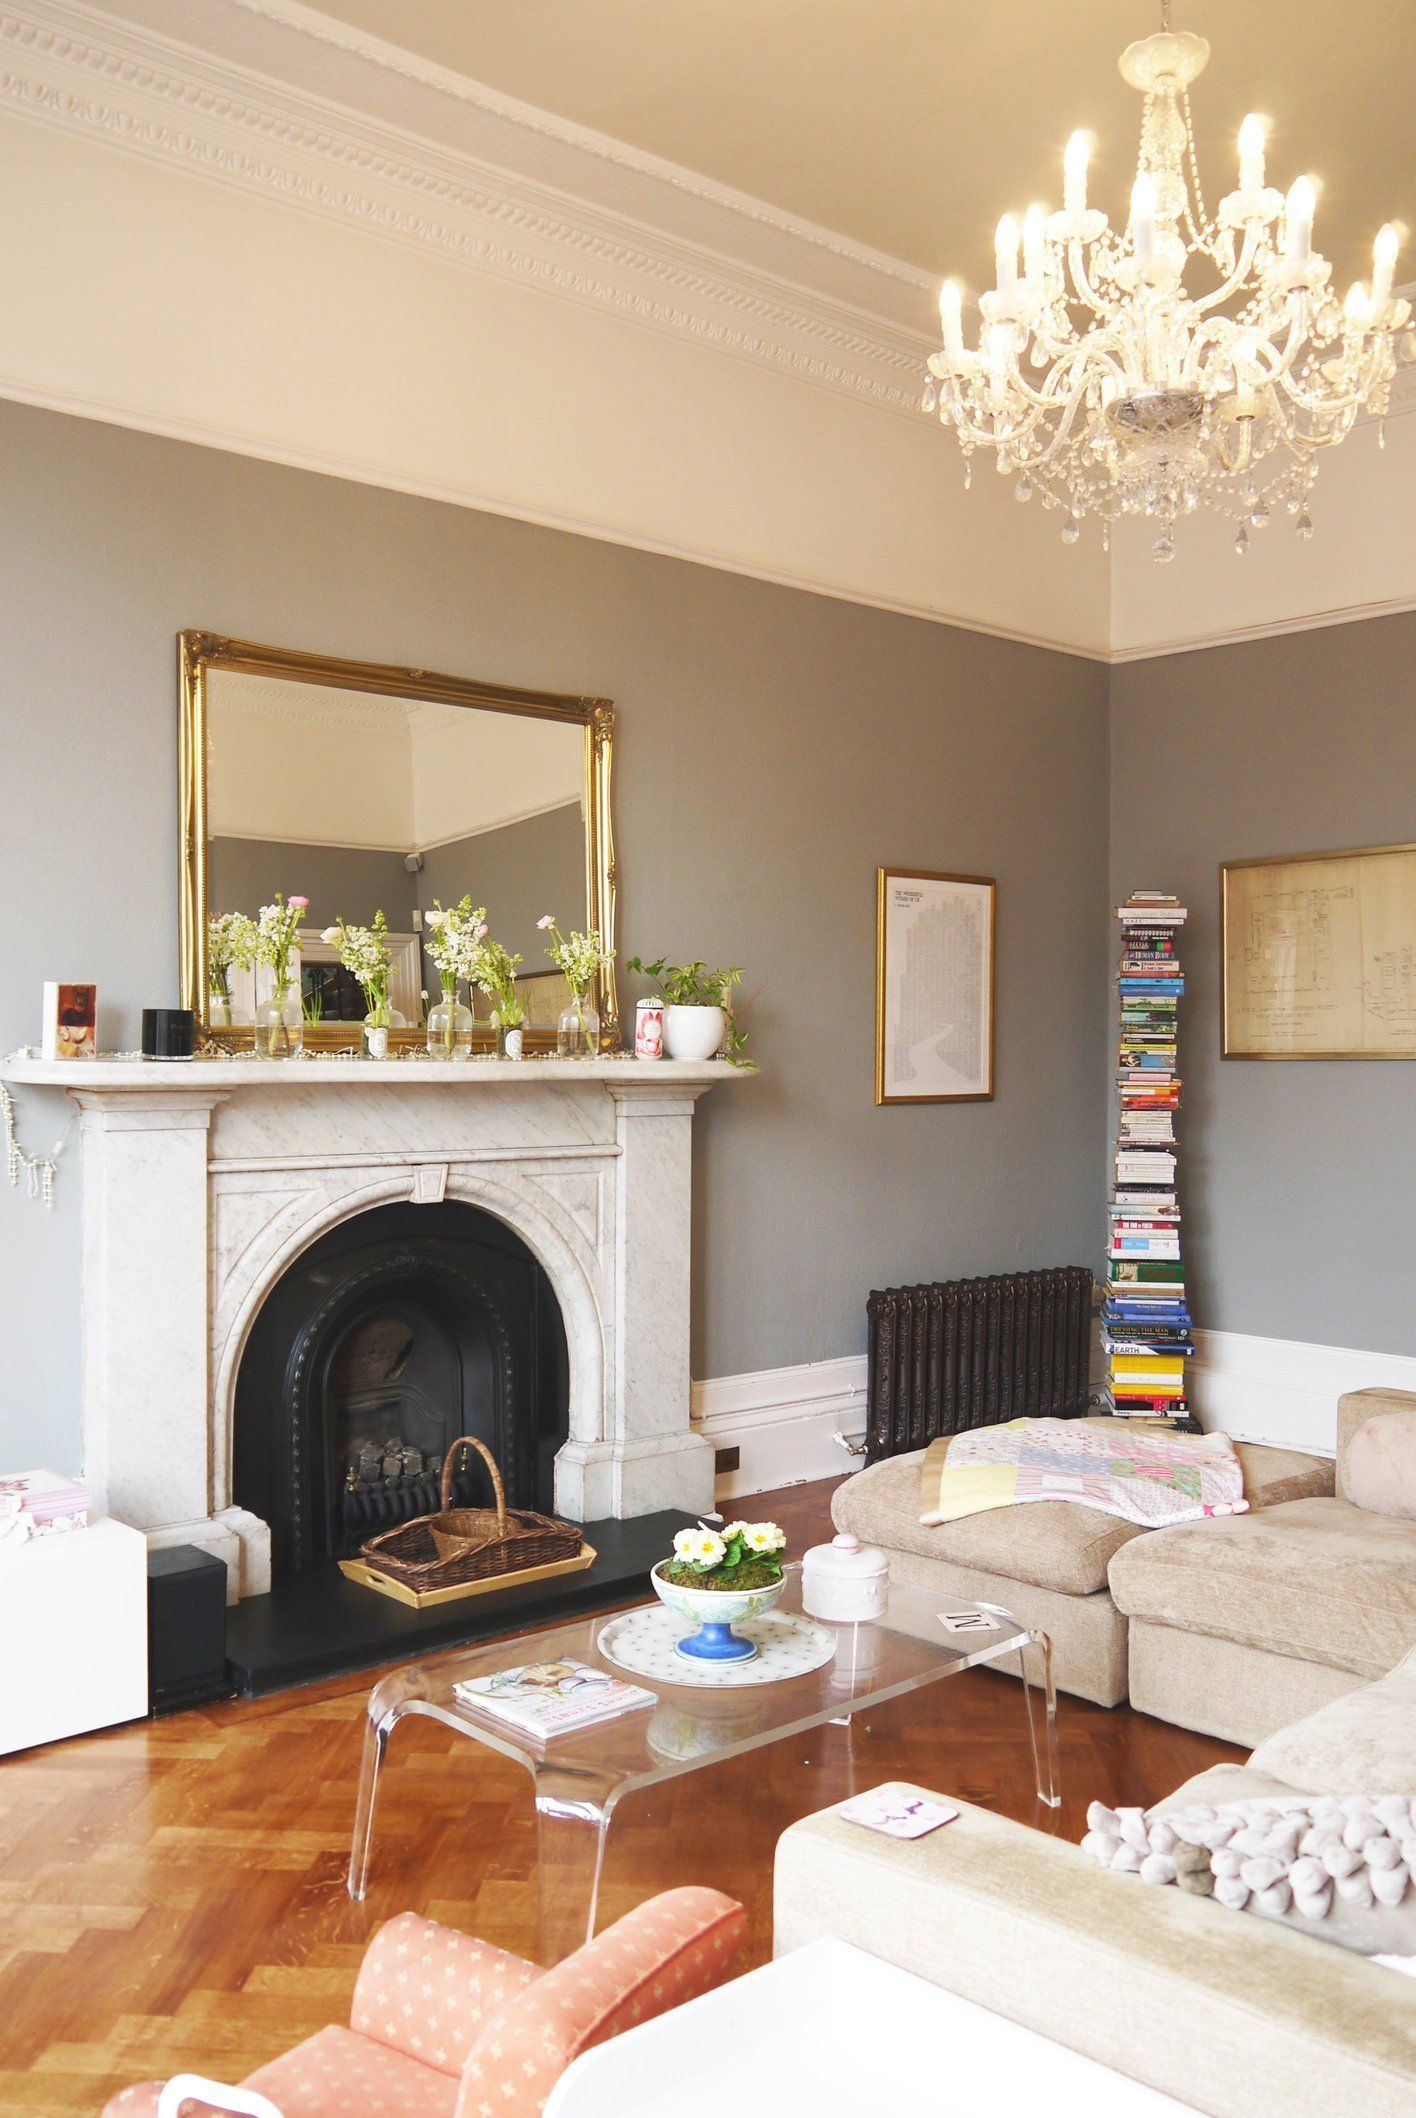 Better Than Beige 6 Nice Neutral Wall Paint Colors Pictured Manor House Gray From Farrow Ball